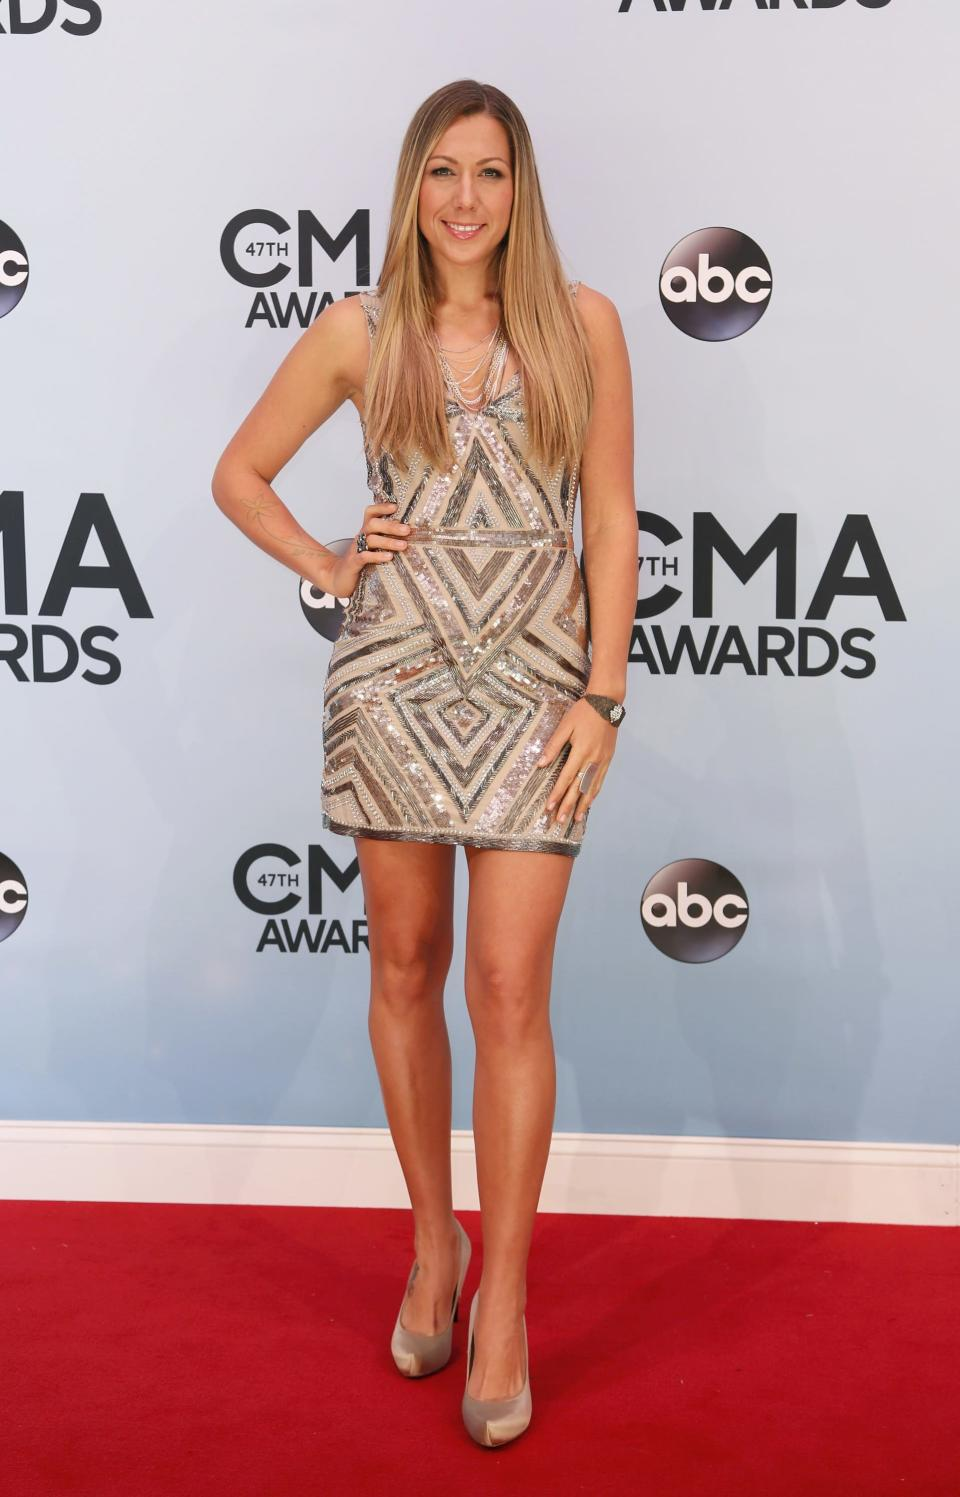 Singer Colbie Caillat arrives at the 47th Country Music Association Awards in Nashville, Tennessee November 6, 2013. REUTERS/Eric Henderson (UNITED STATES - Tags: ENTERTAINMENT)